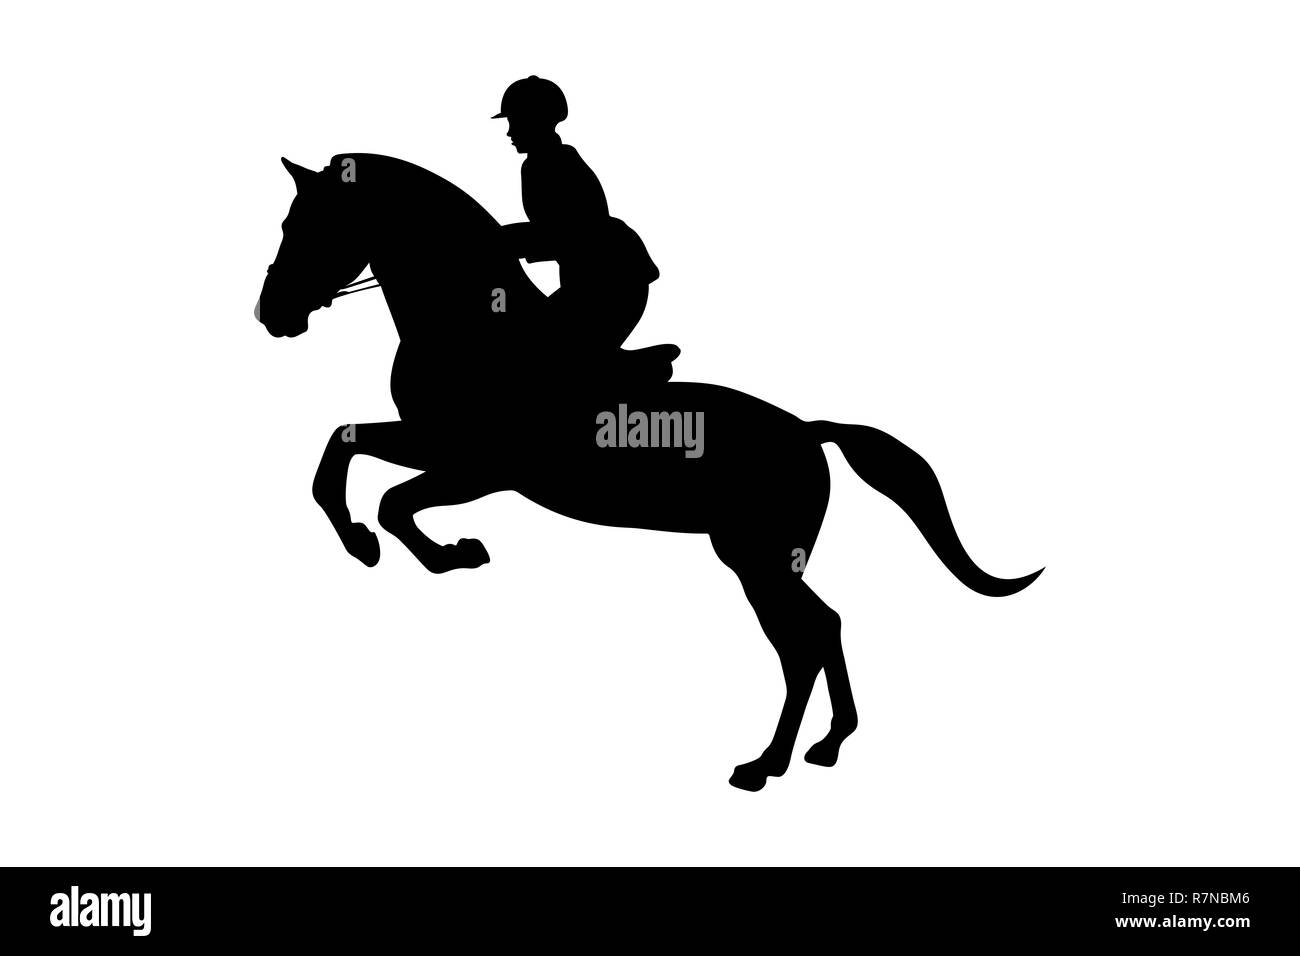 Equestrian Jumping Silhouette High Resolution Stock Photography And Images Alamy